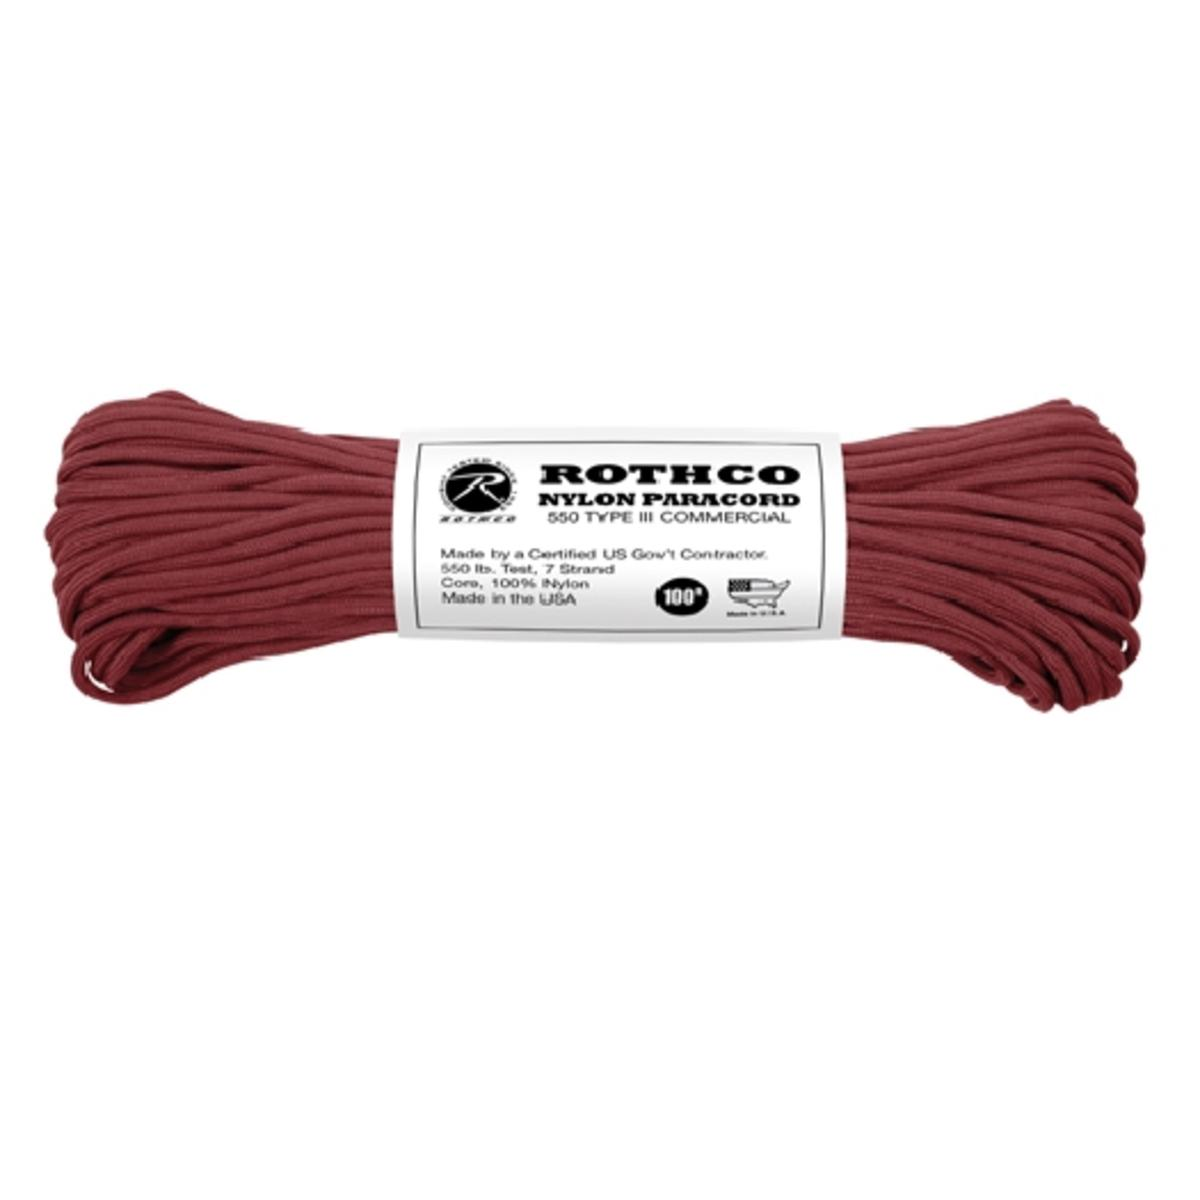 100 ft of 550 Paracord, Mil-Spec Compliant Para Cord - Walmart.com